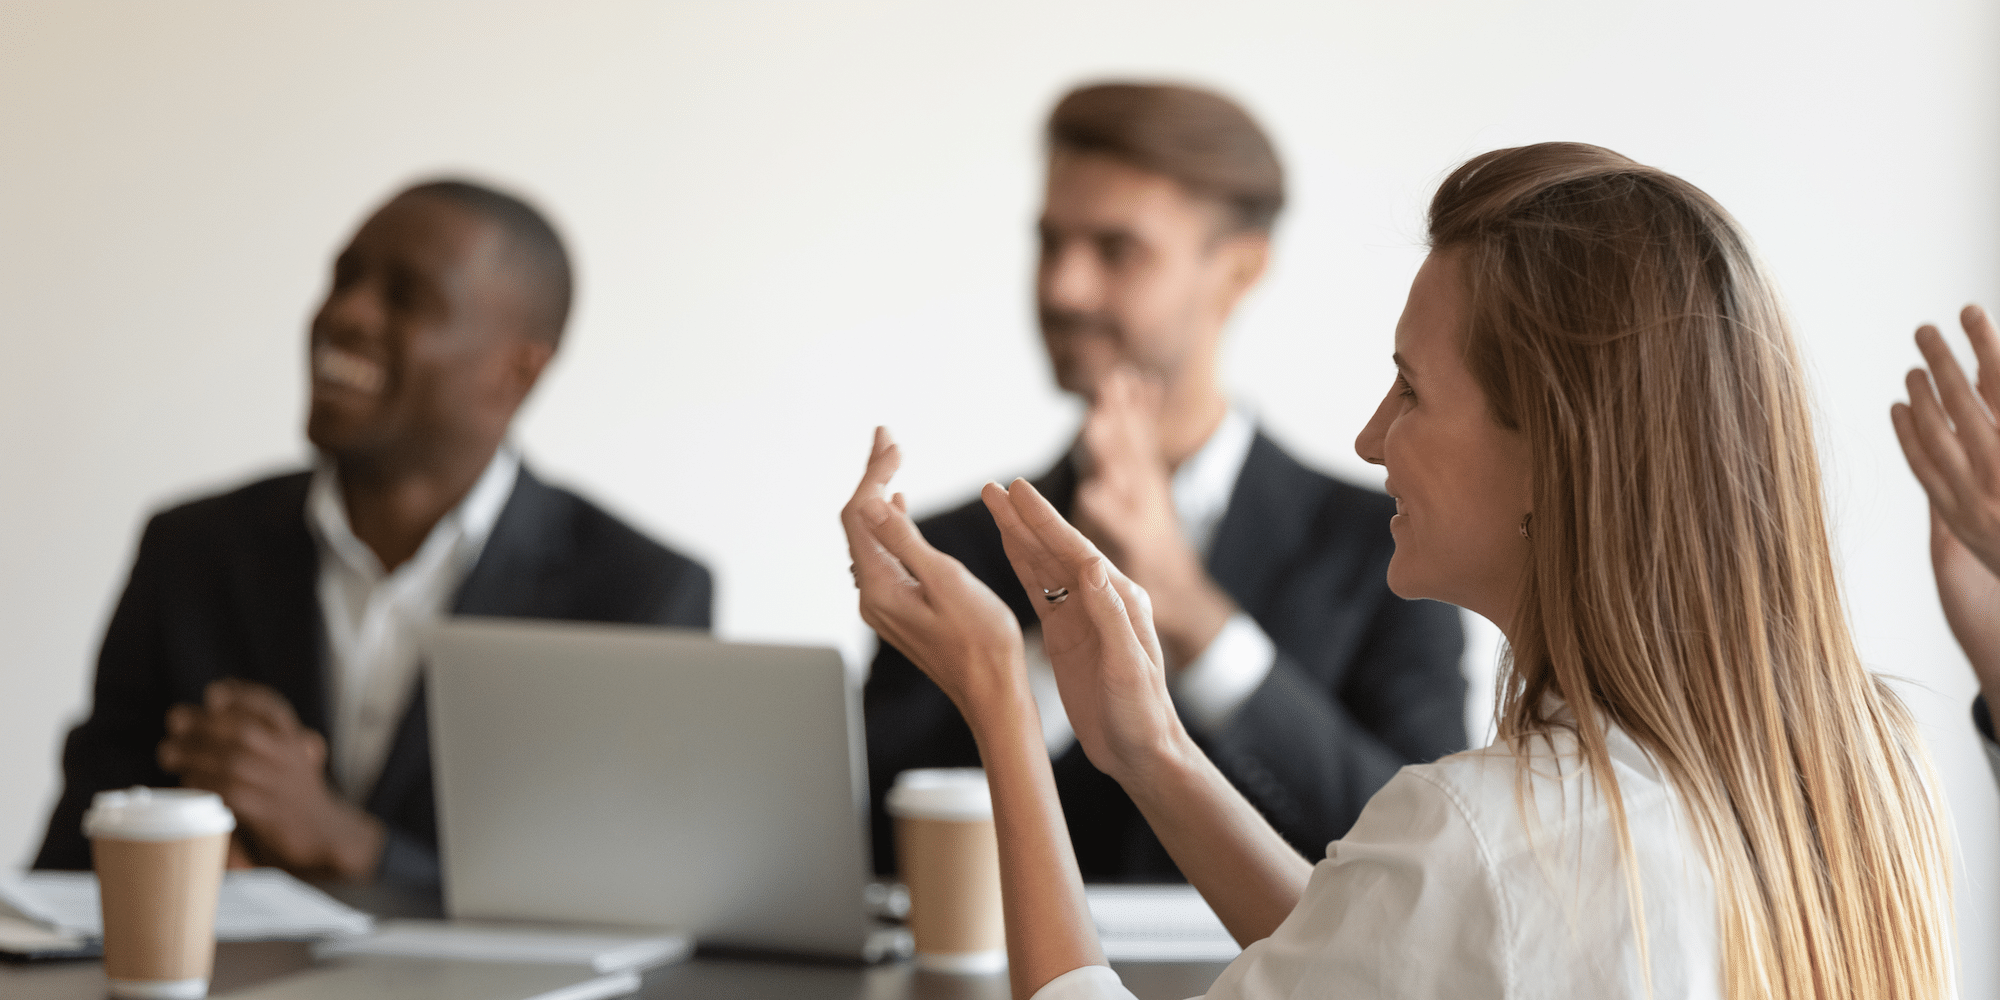 Why is employee recognition important | How to show employee appreciation